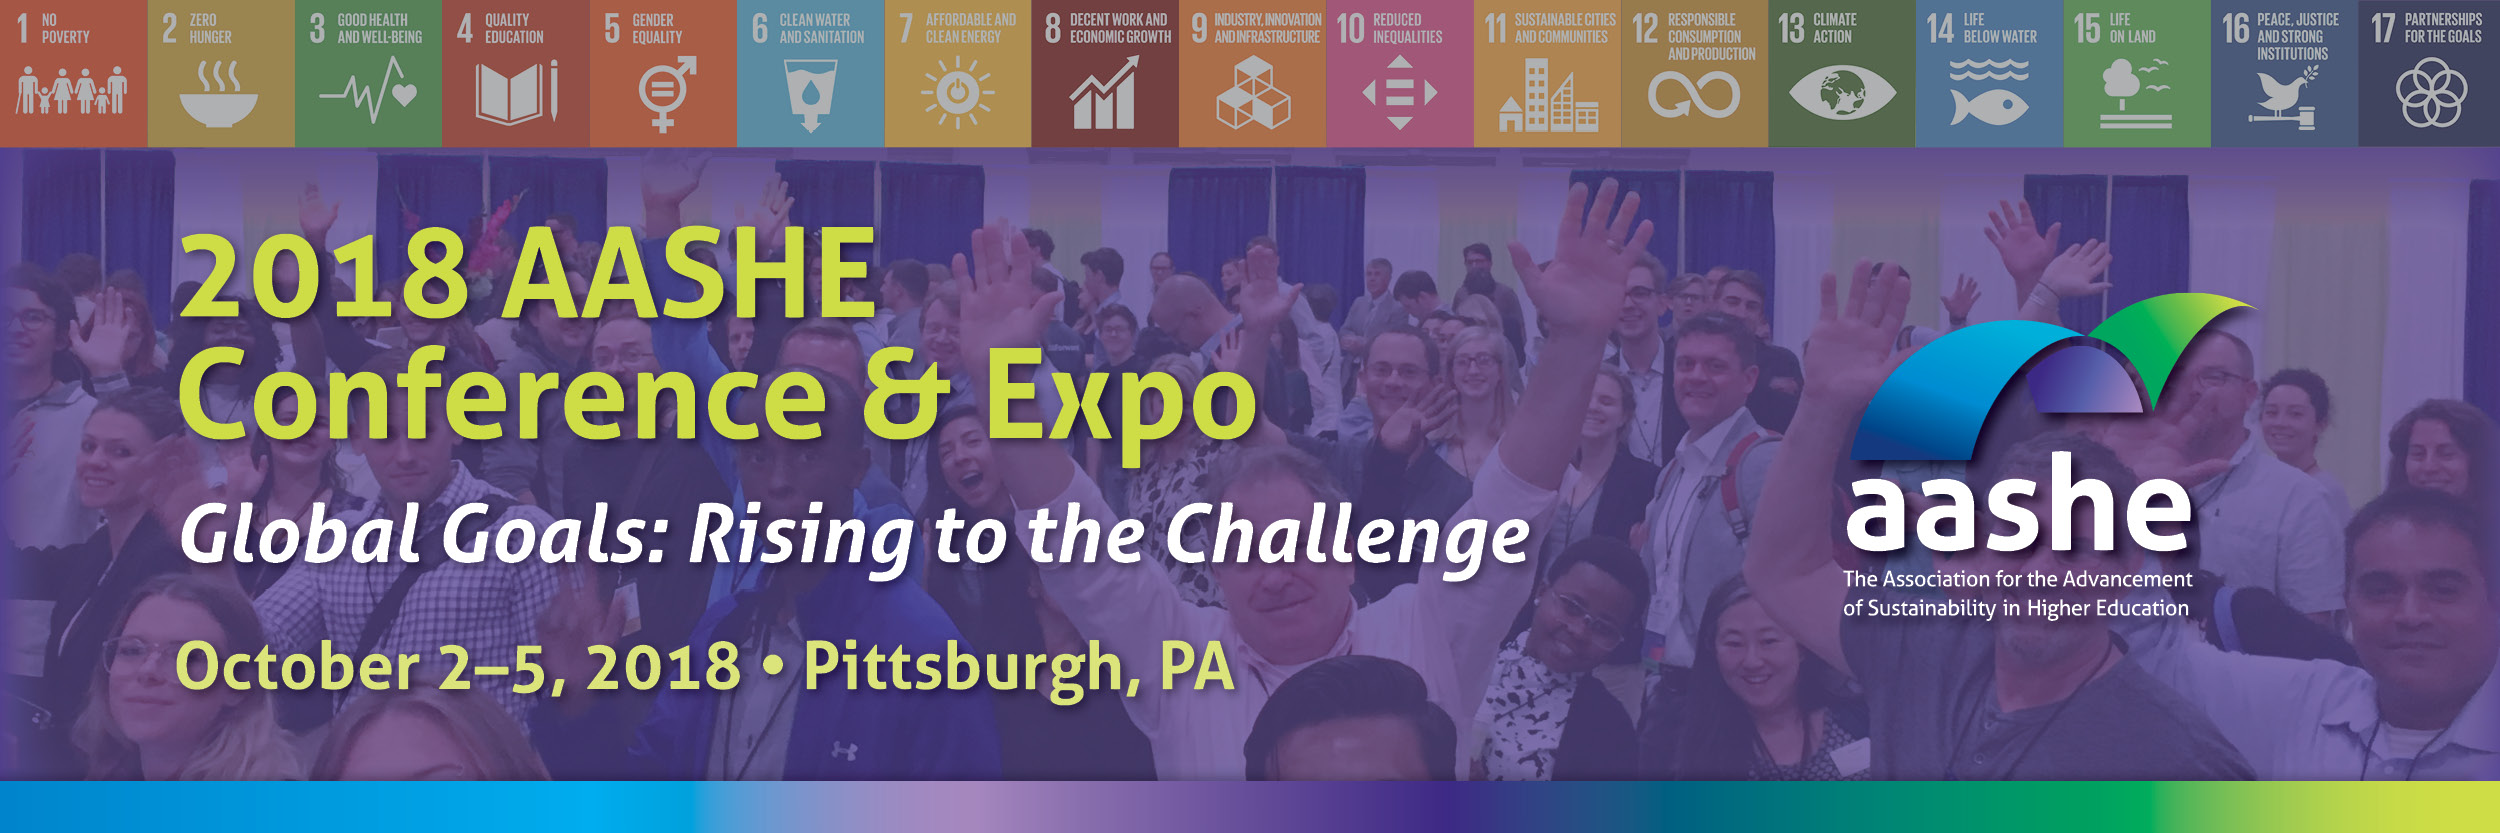 AASHE_2018Conf_EmailBanner_Final